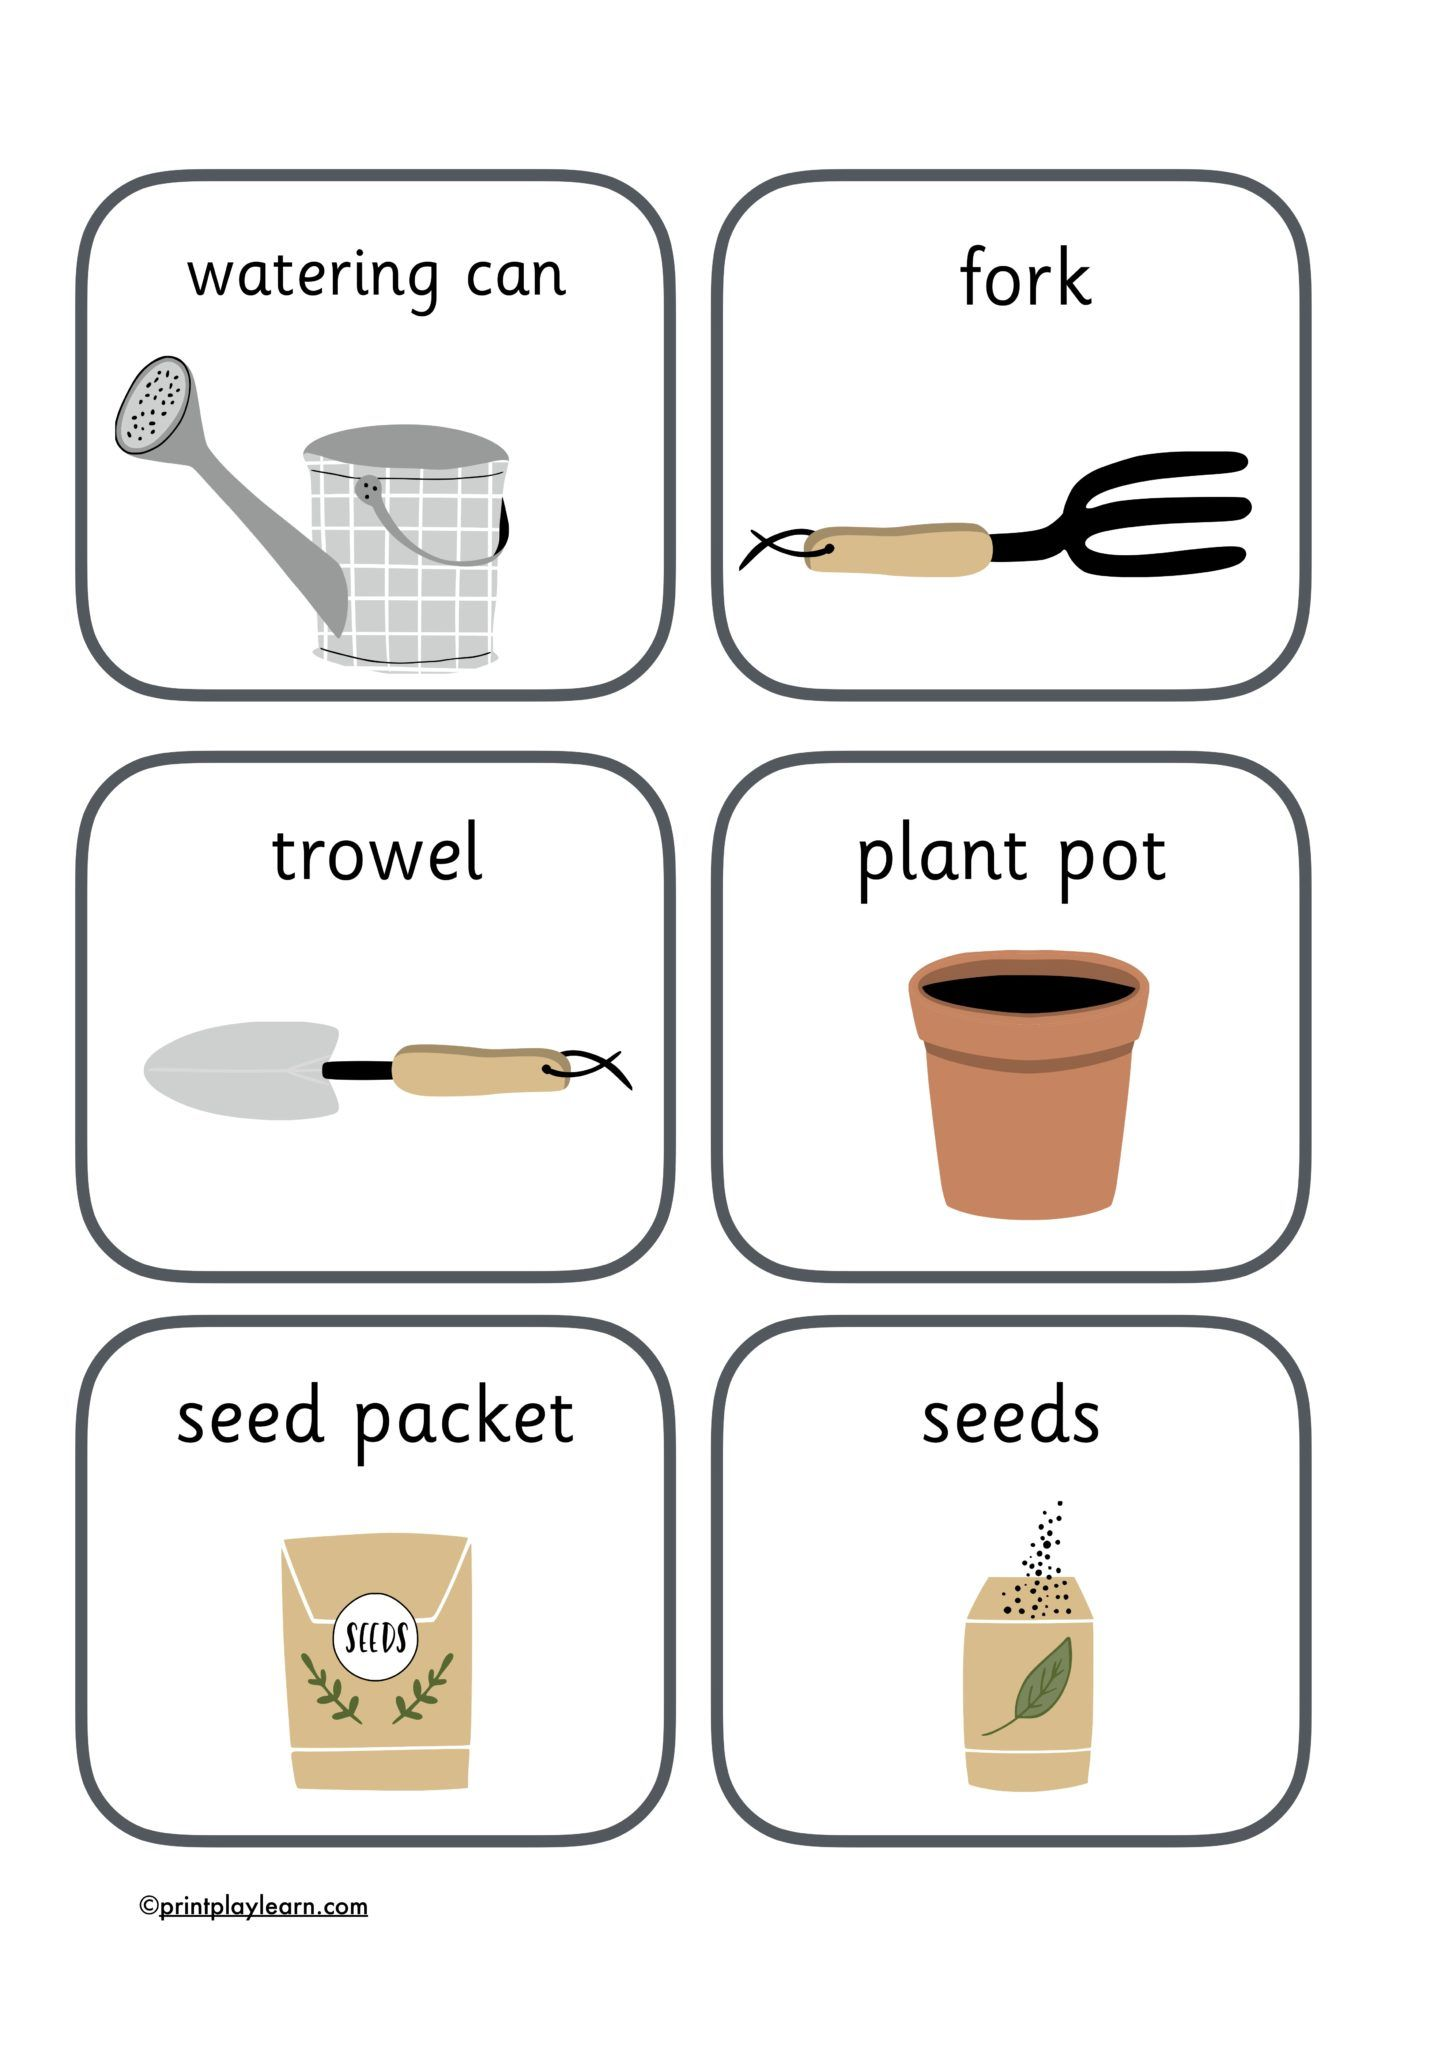 Gardening Tools Flashcards